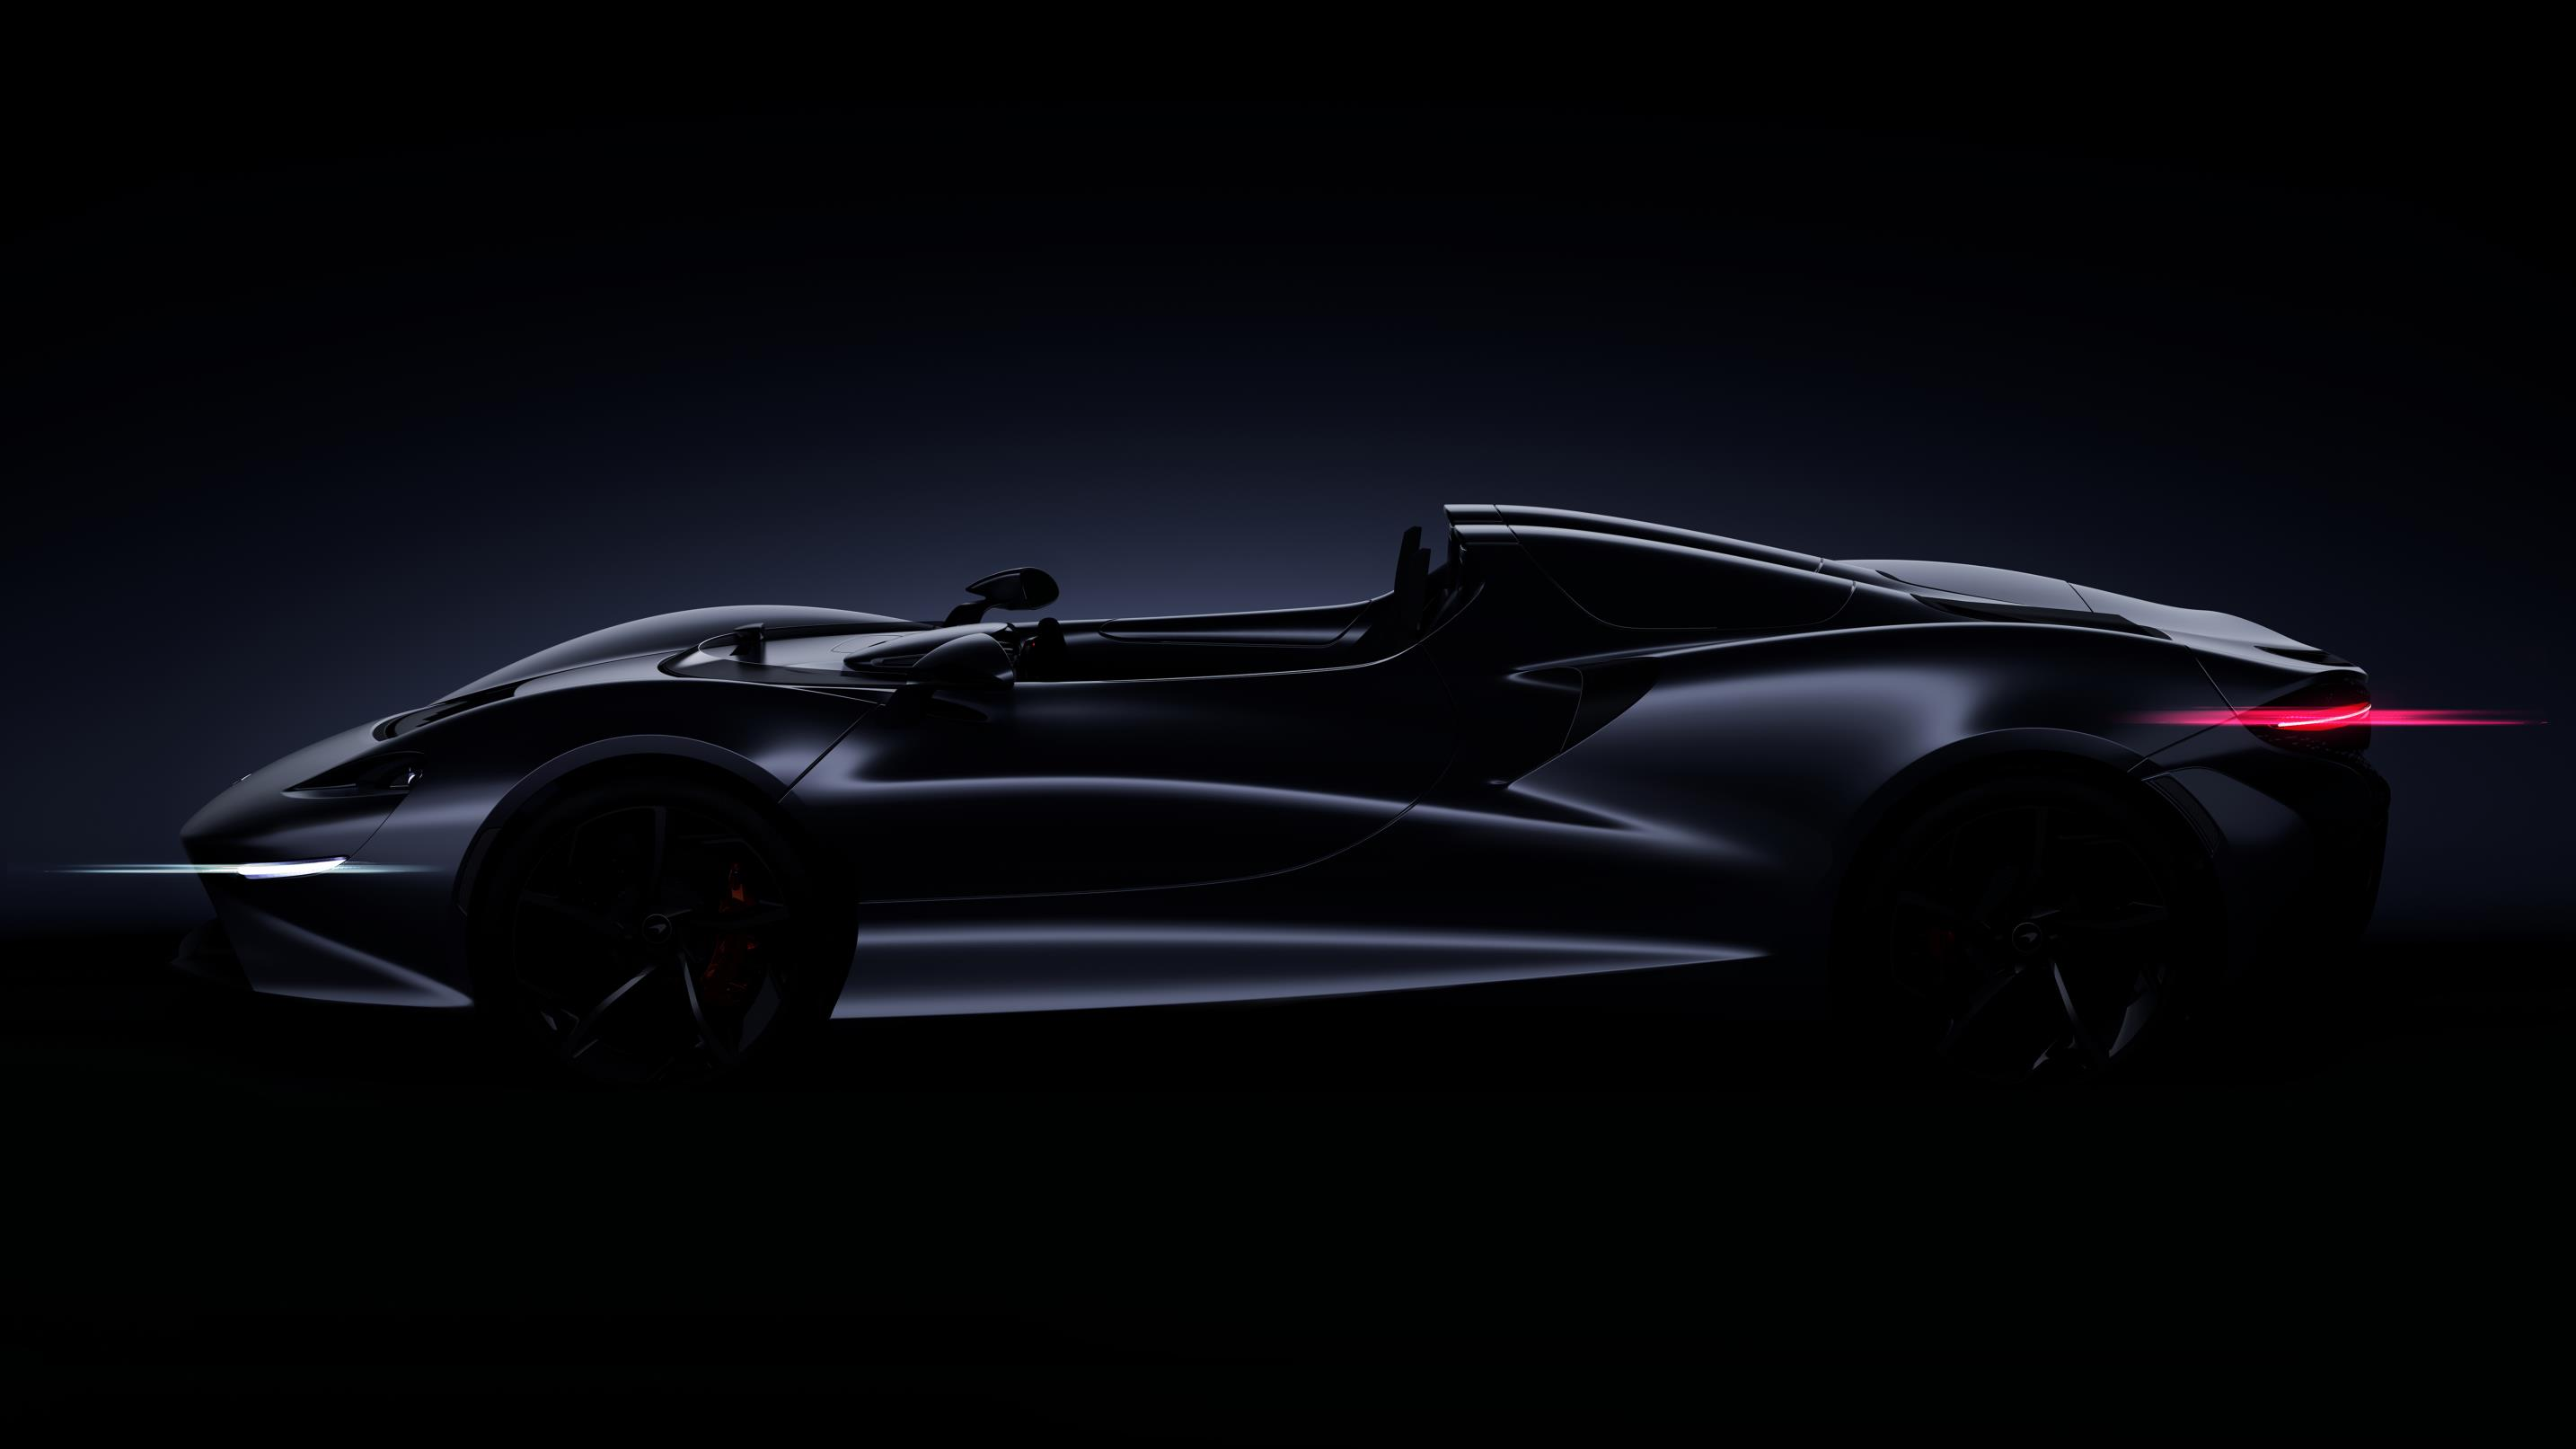 McLaren Automotive announces striking new Ultimate Series model